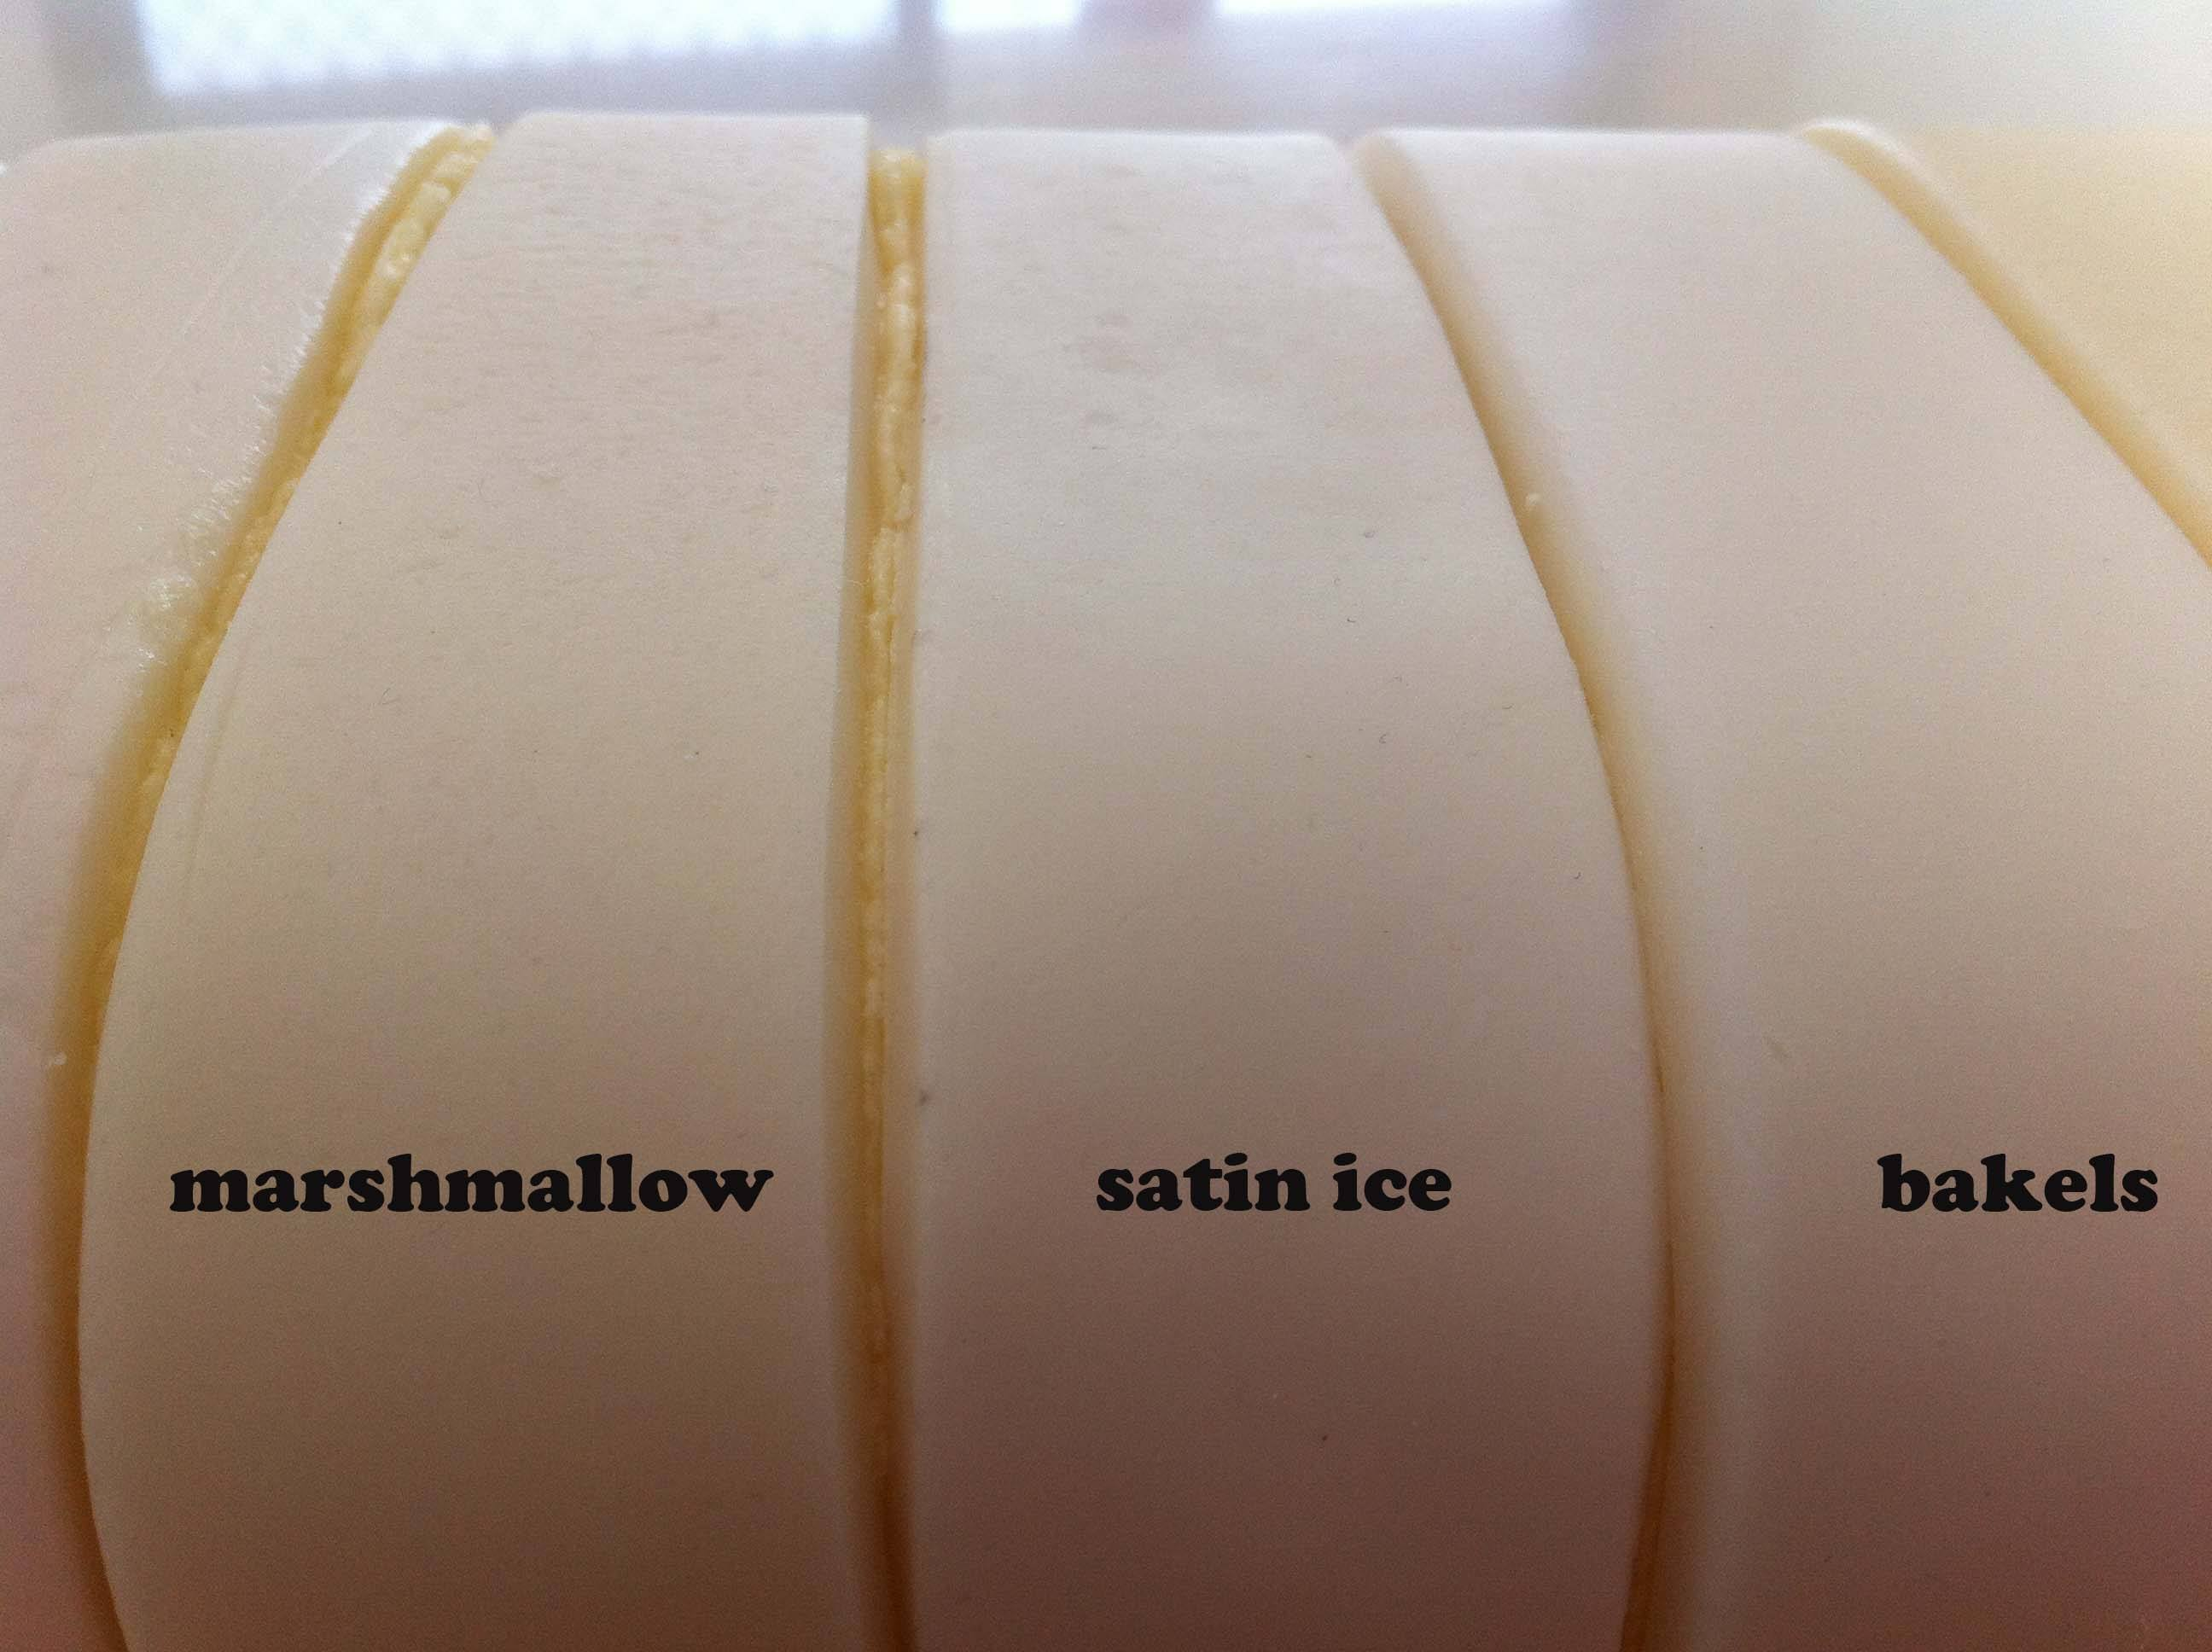 fondant review satin ice bakels petinice marshmallow